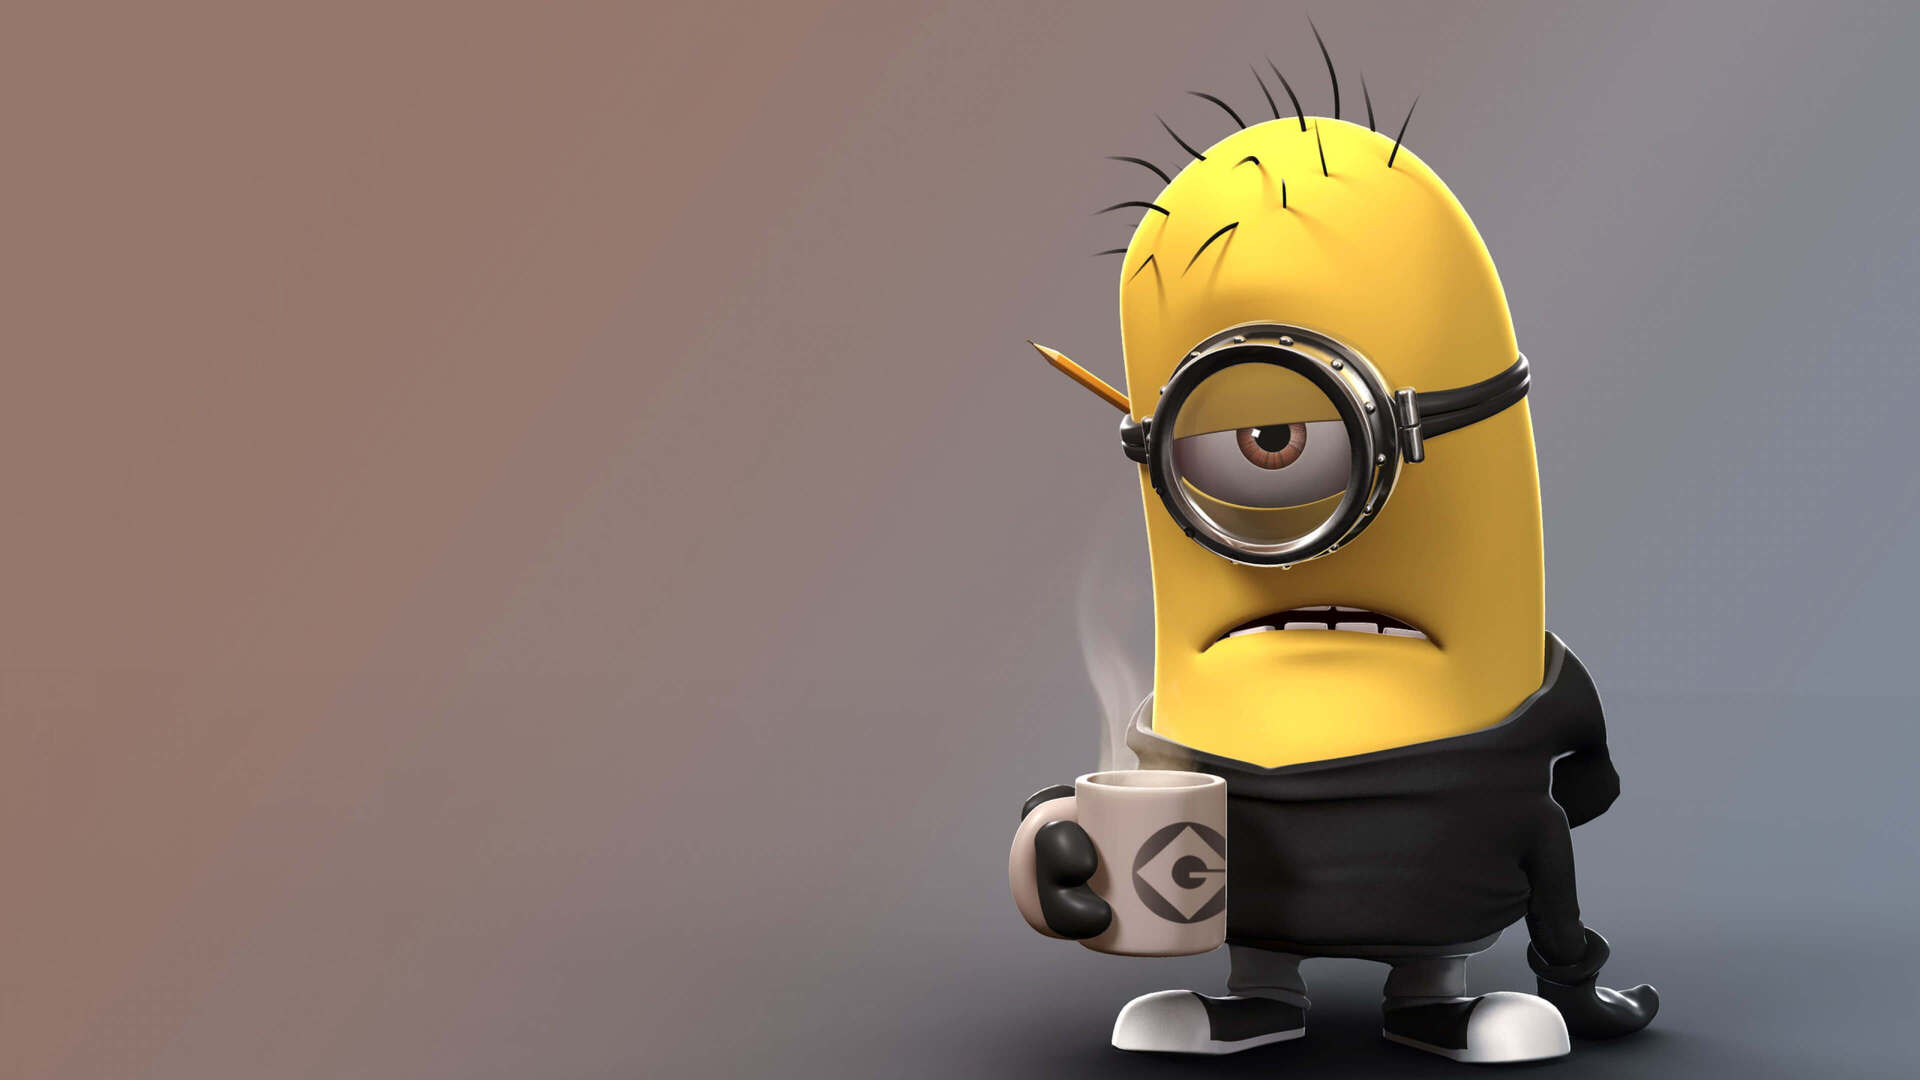 Despicable Me Angry Minion B9